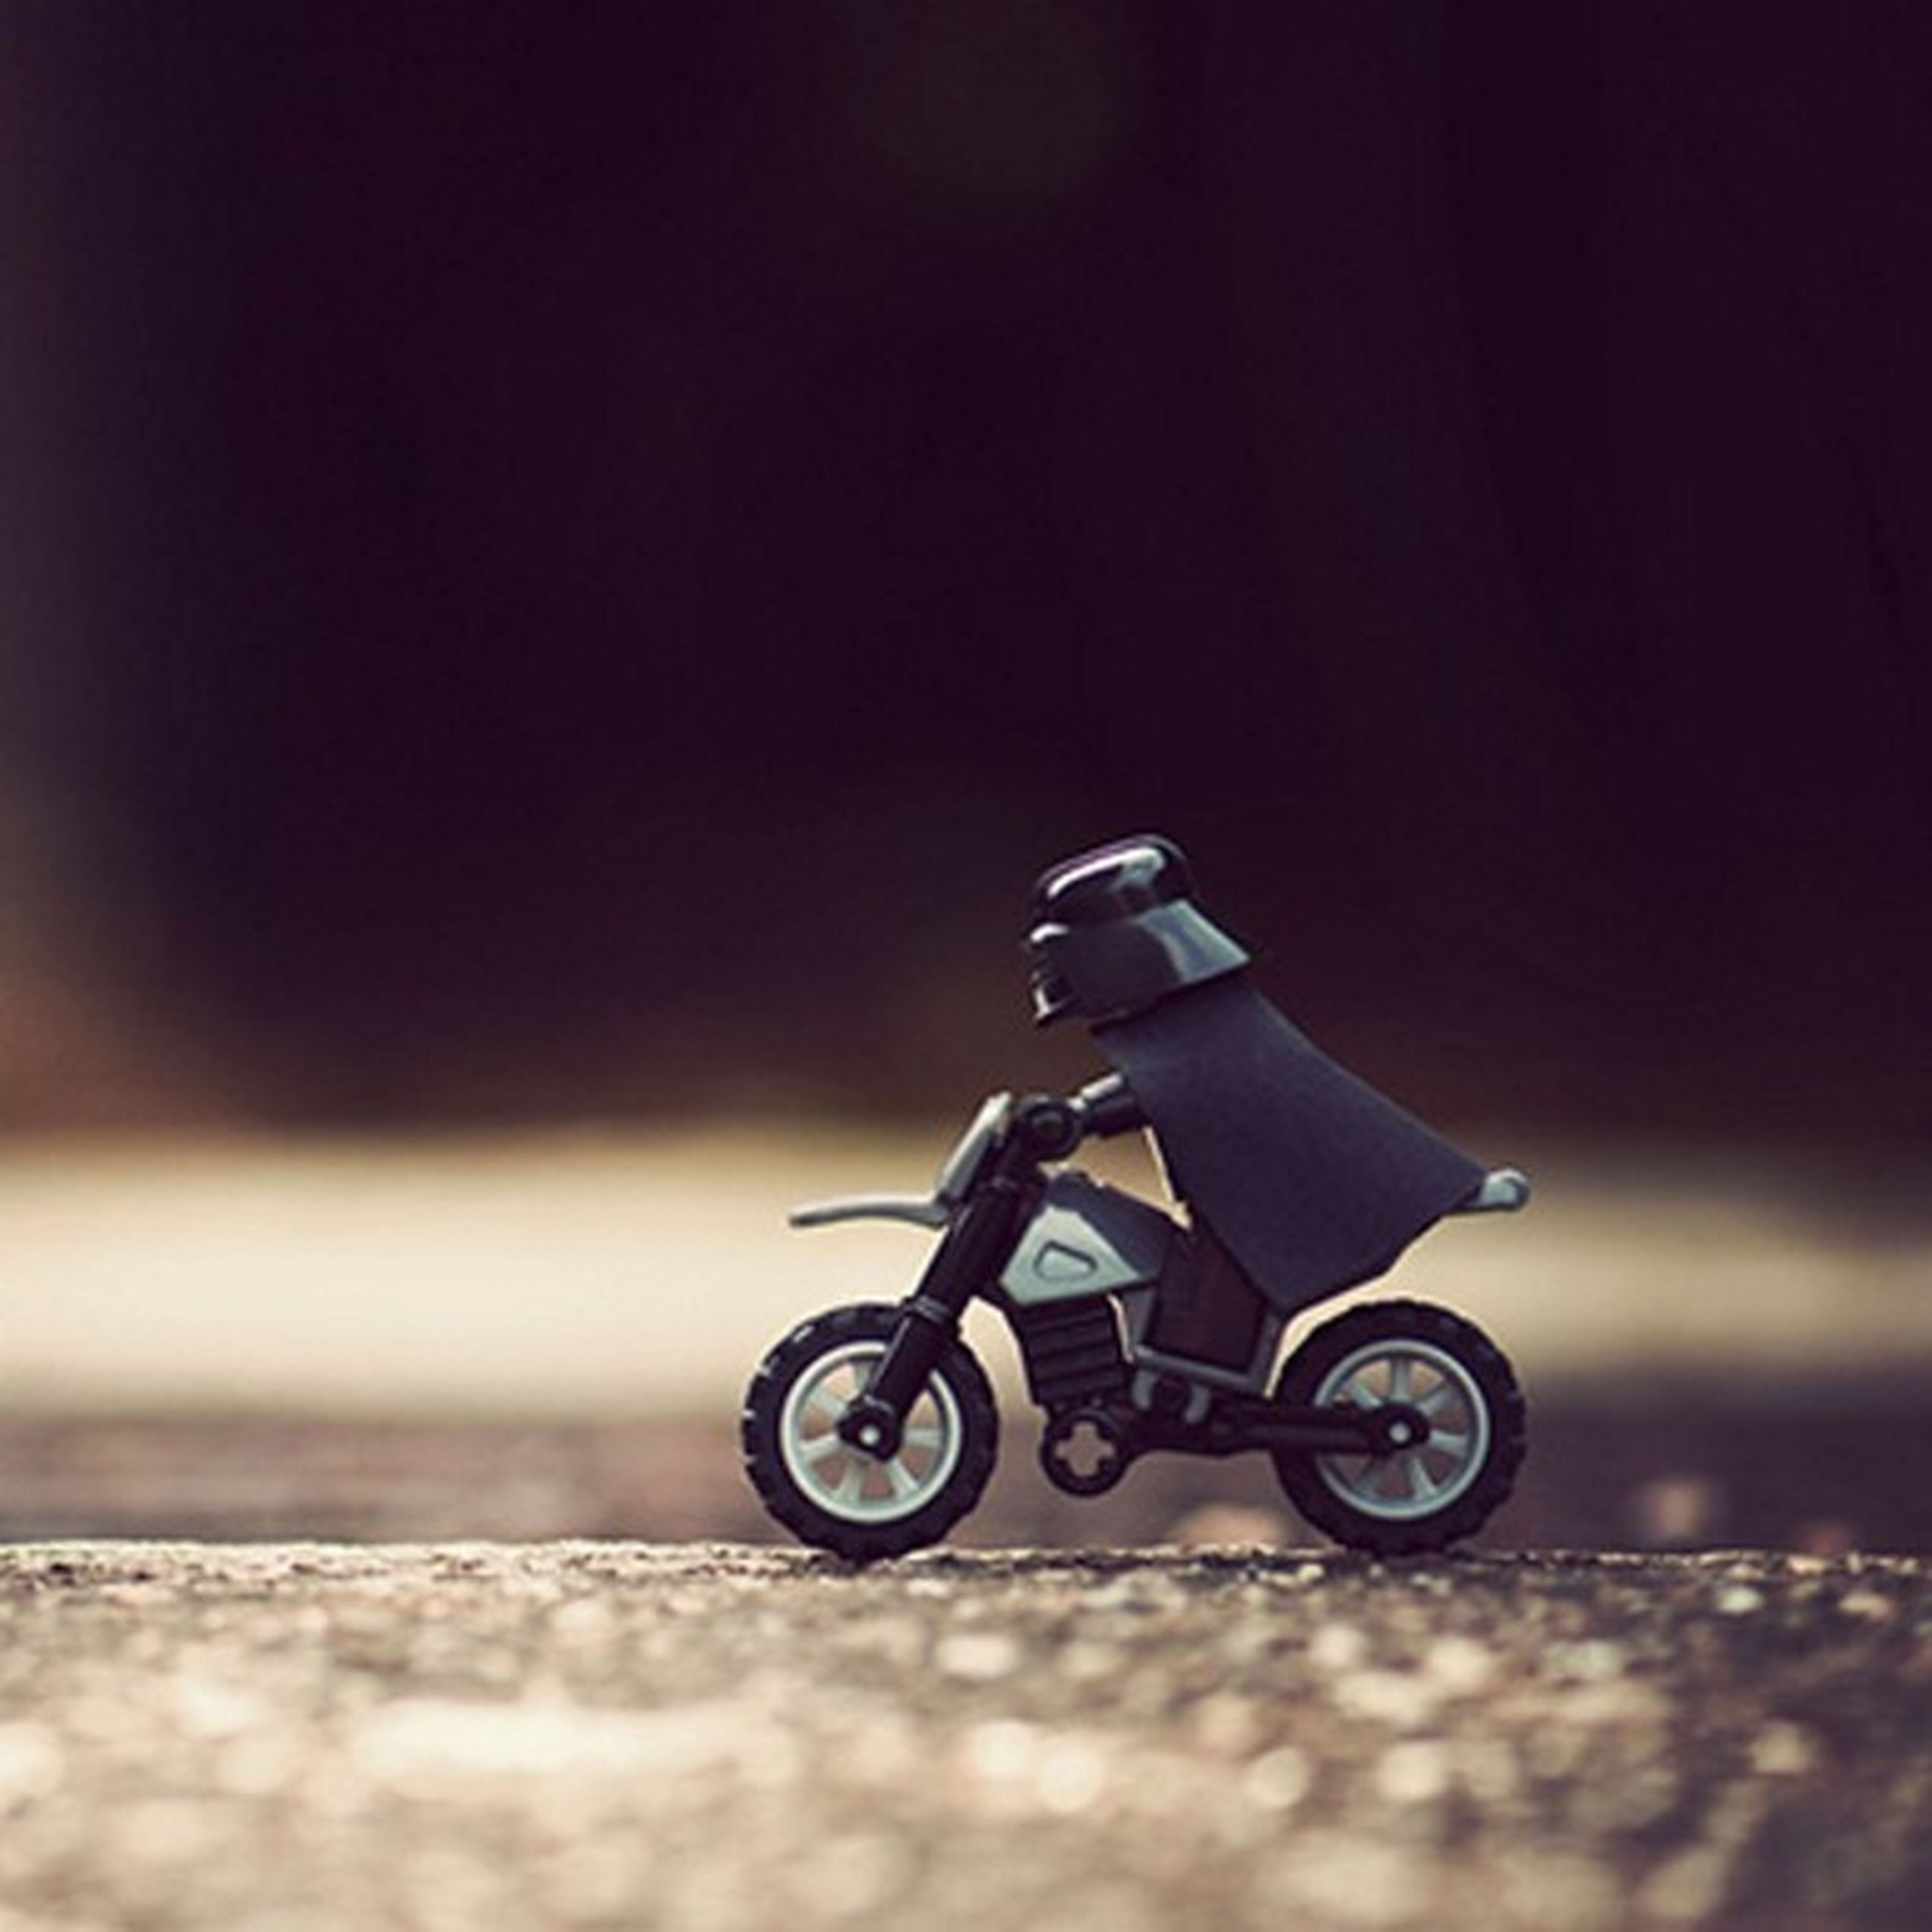 transportation, bicycle, land vehicle, mode of transport, selective focus, street, stationary, focus on foreground, surface level, road, outdoors, no people, parking, motorcycle, parked, close-up, day, wheel, car, riding